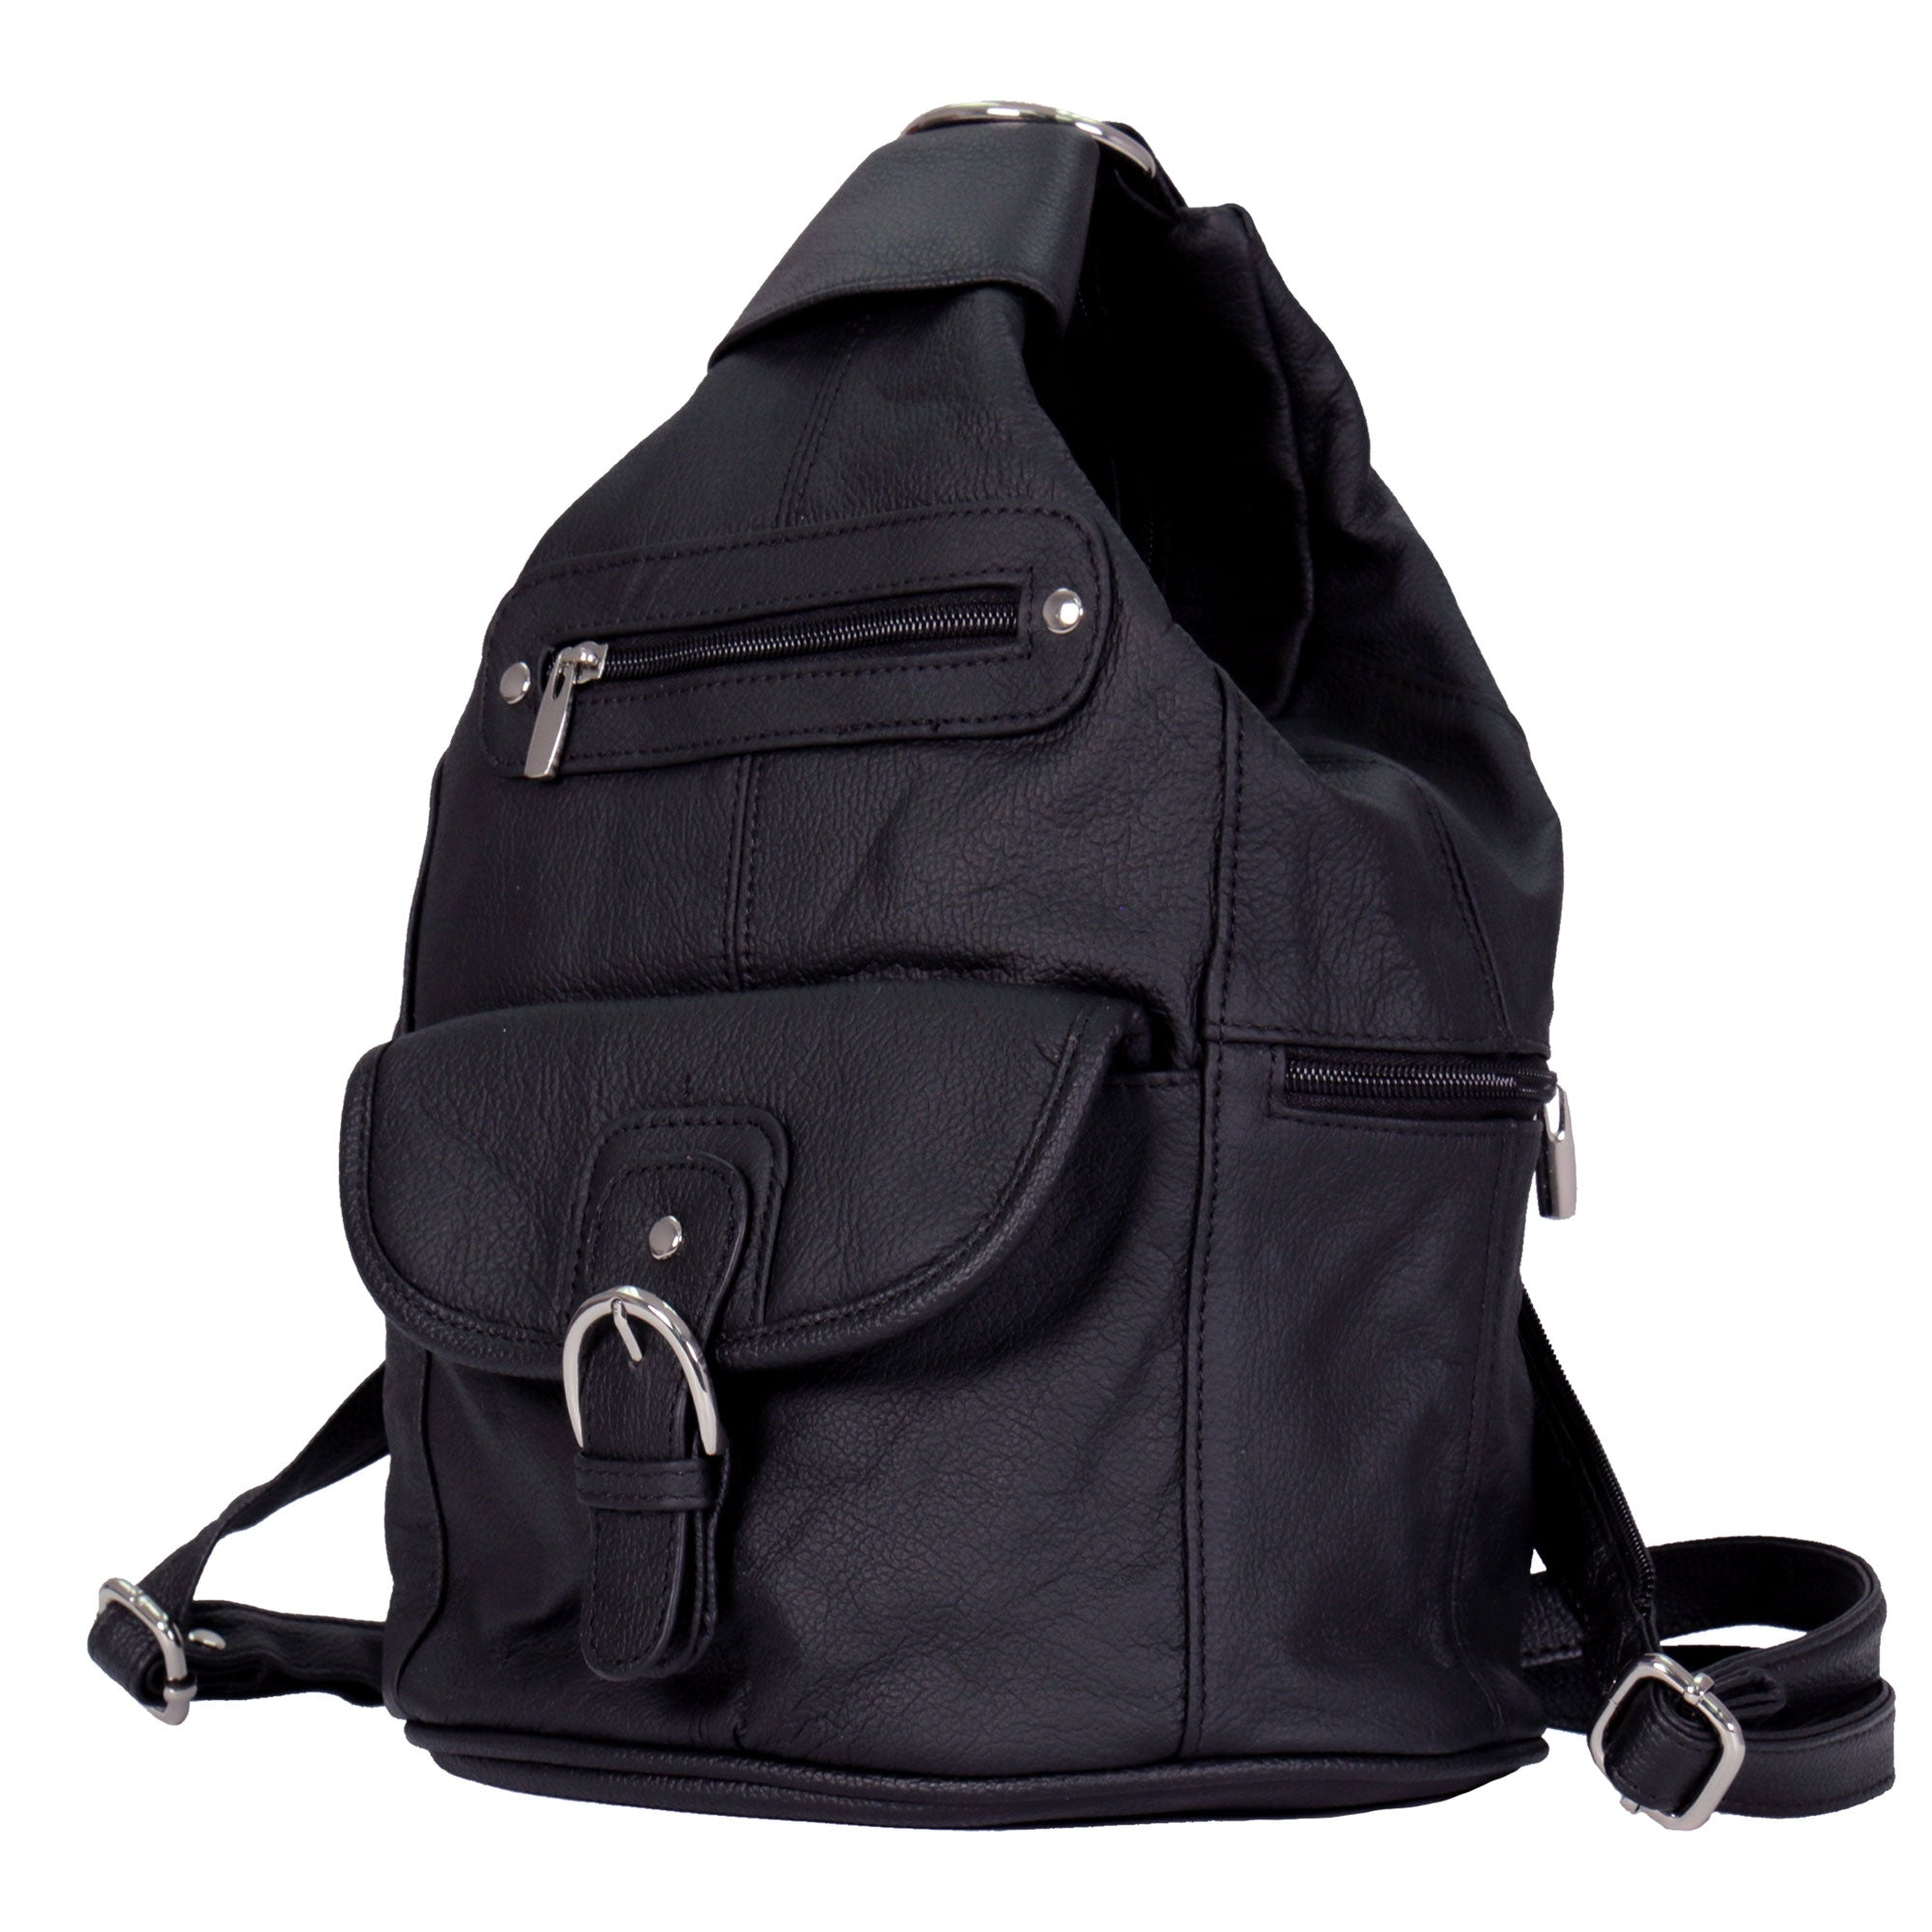 Hot Leathers 6 Pocket Leather Backpack Purse